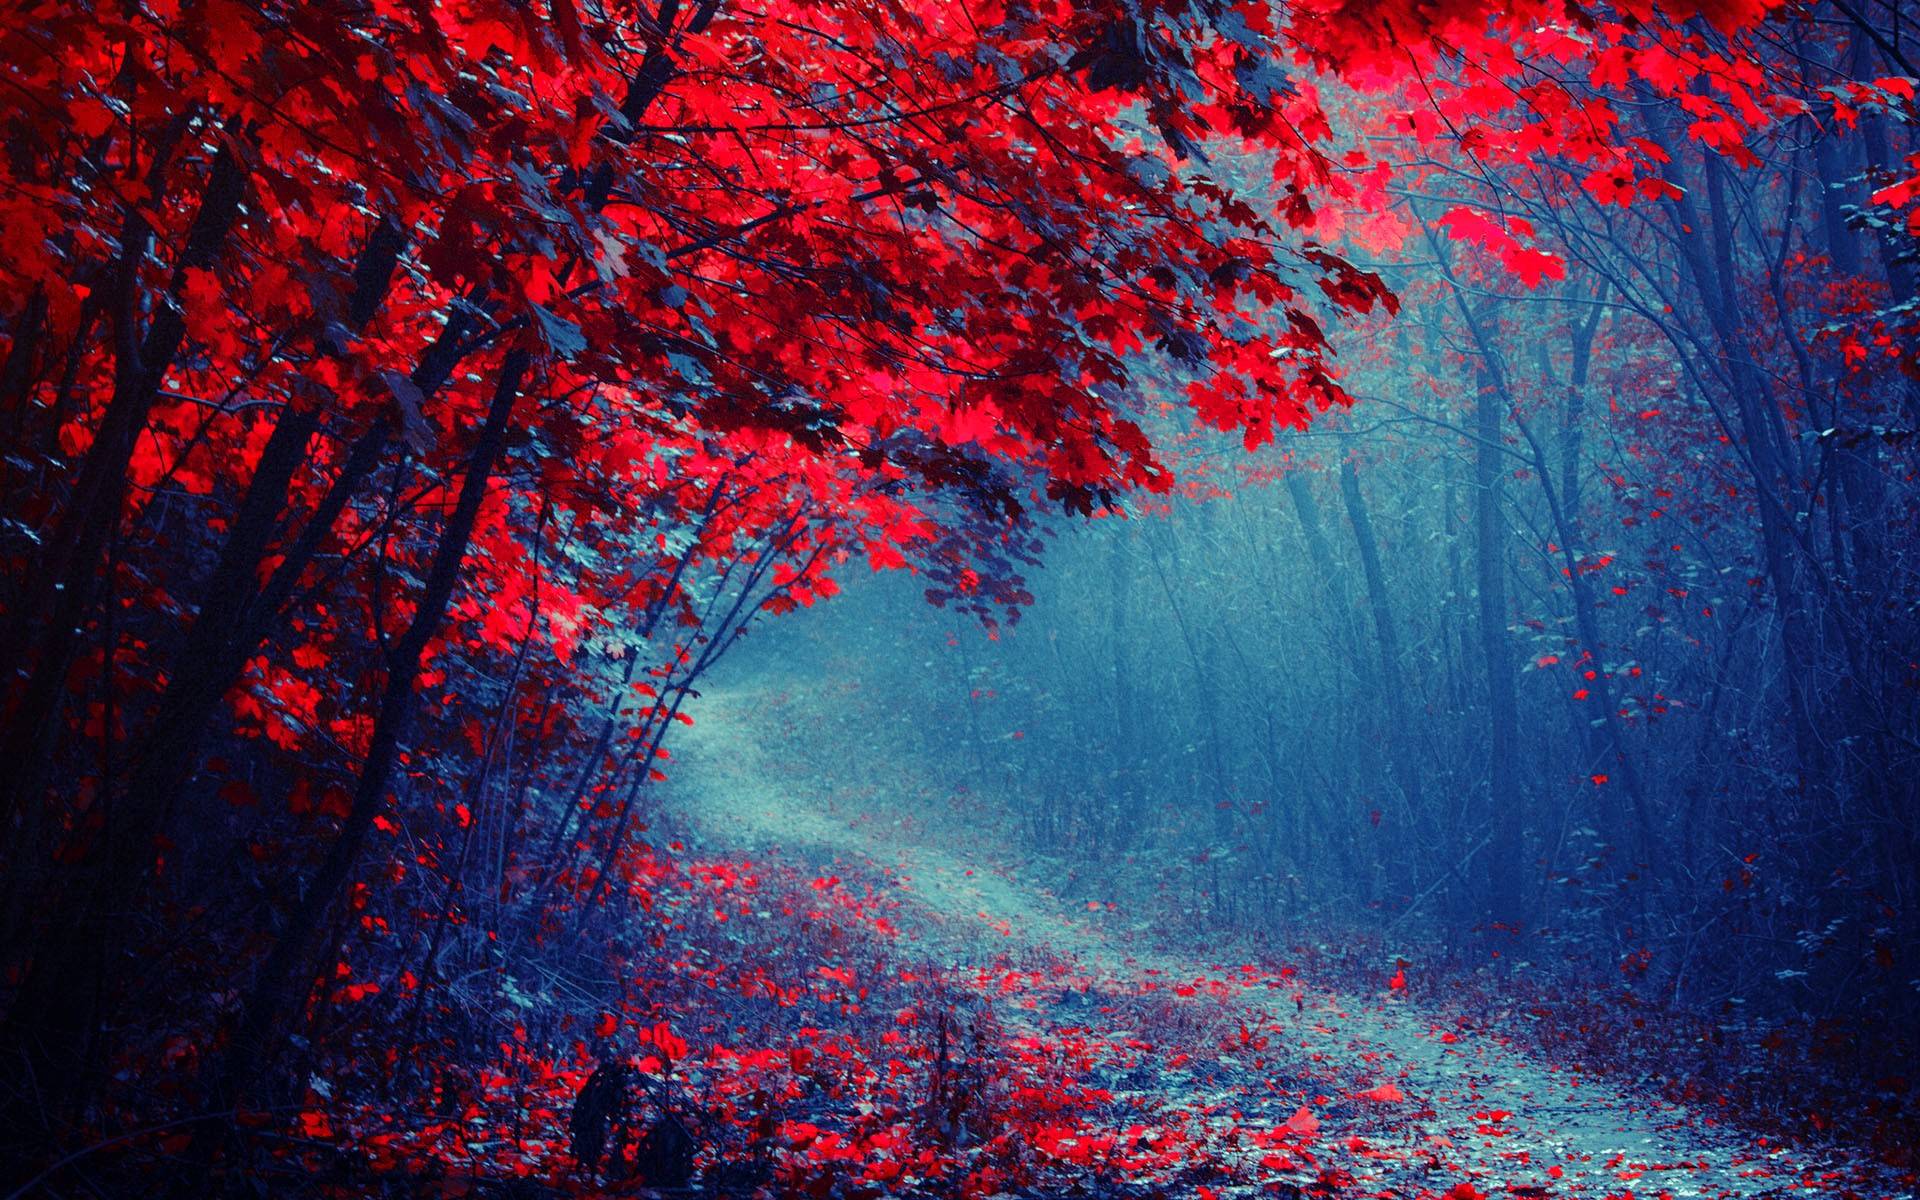 Wallpaper Red Leaves Forest Road Trees Autumn Mist Trail